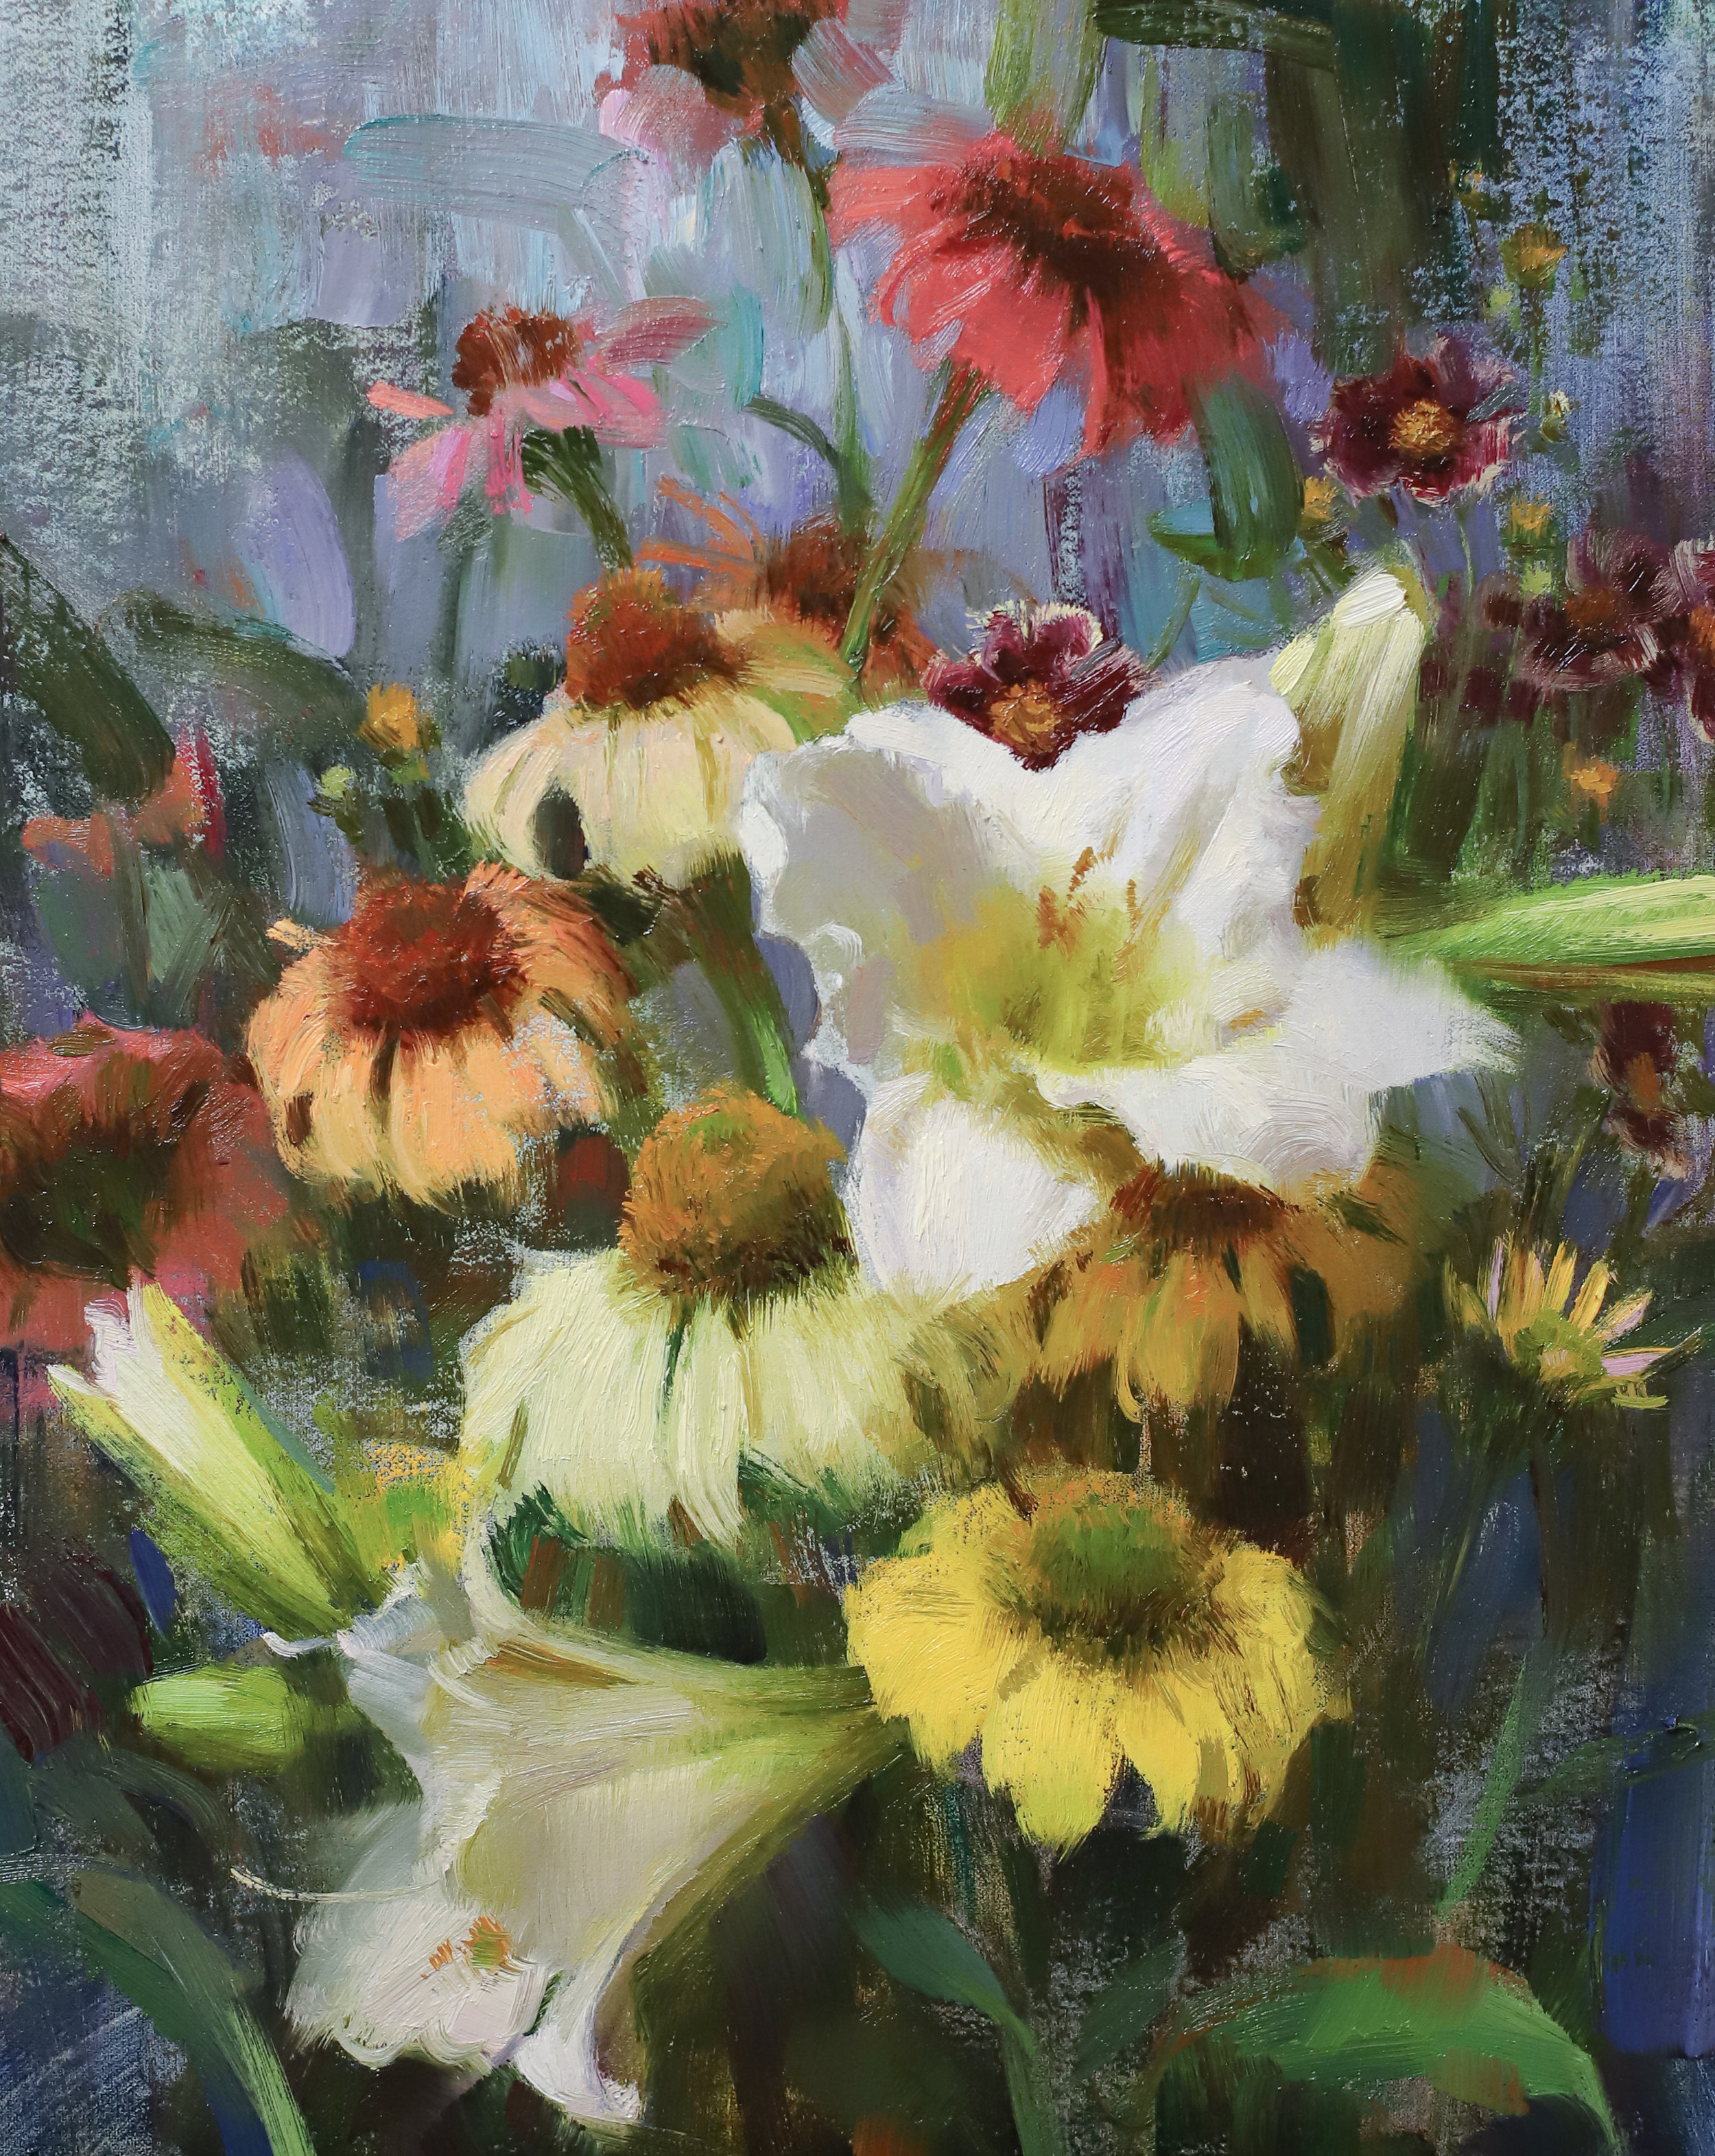 Daylilies, Echinacea, & Coreopsis, 2019, 14 x 11 inches, oil